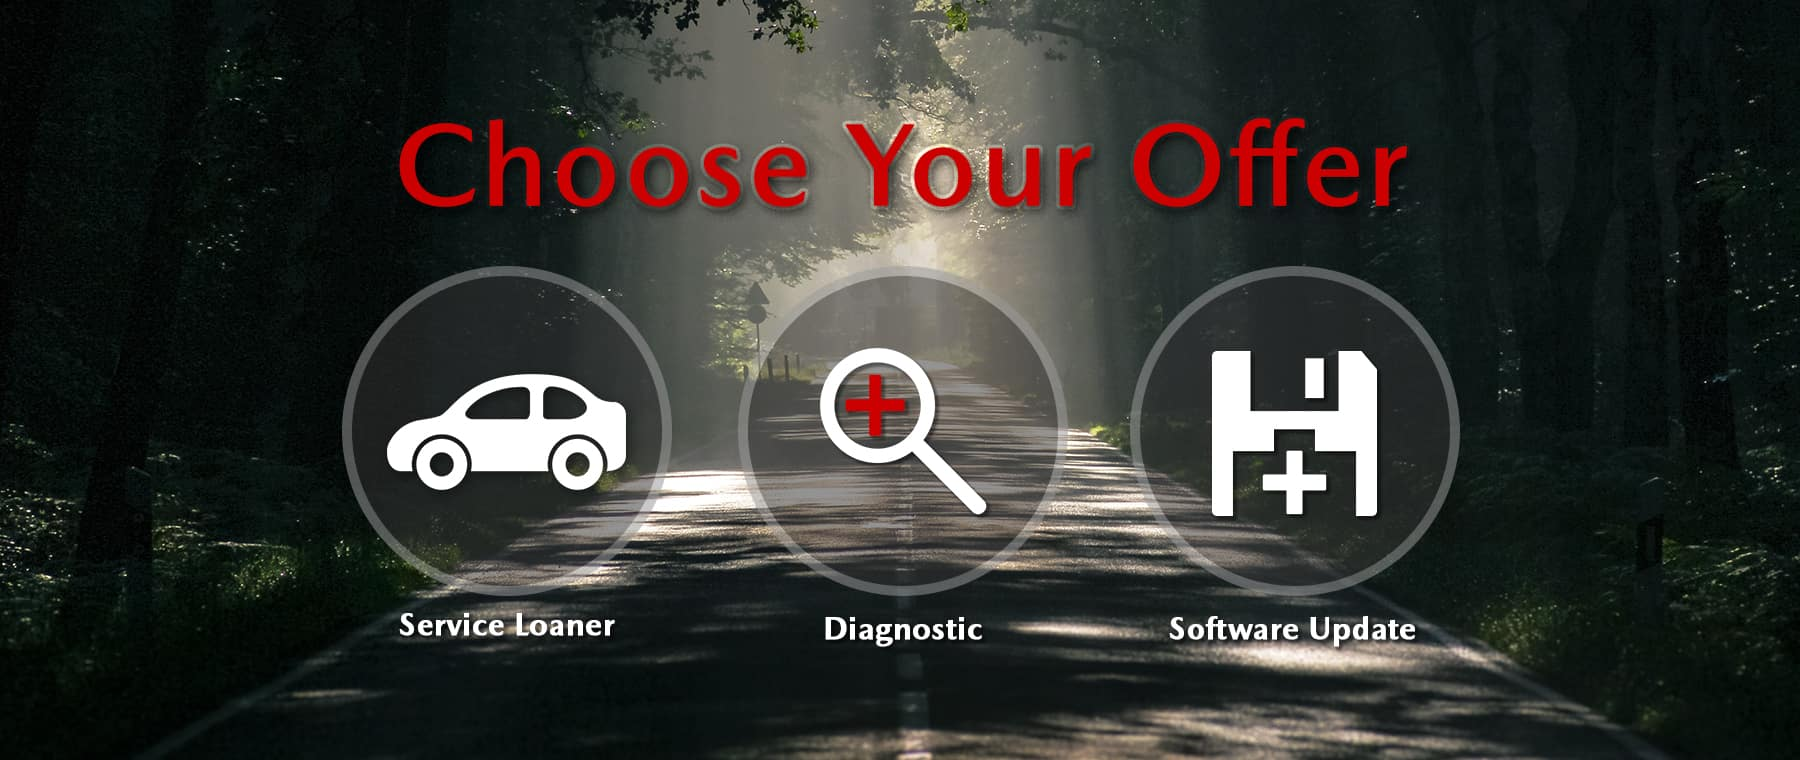 Choose Your Offer Service Campaign – Harris Mazda